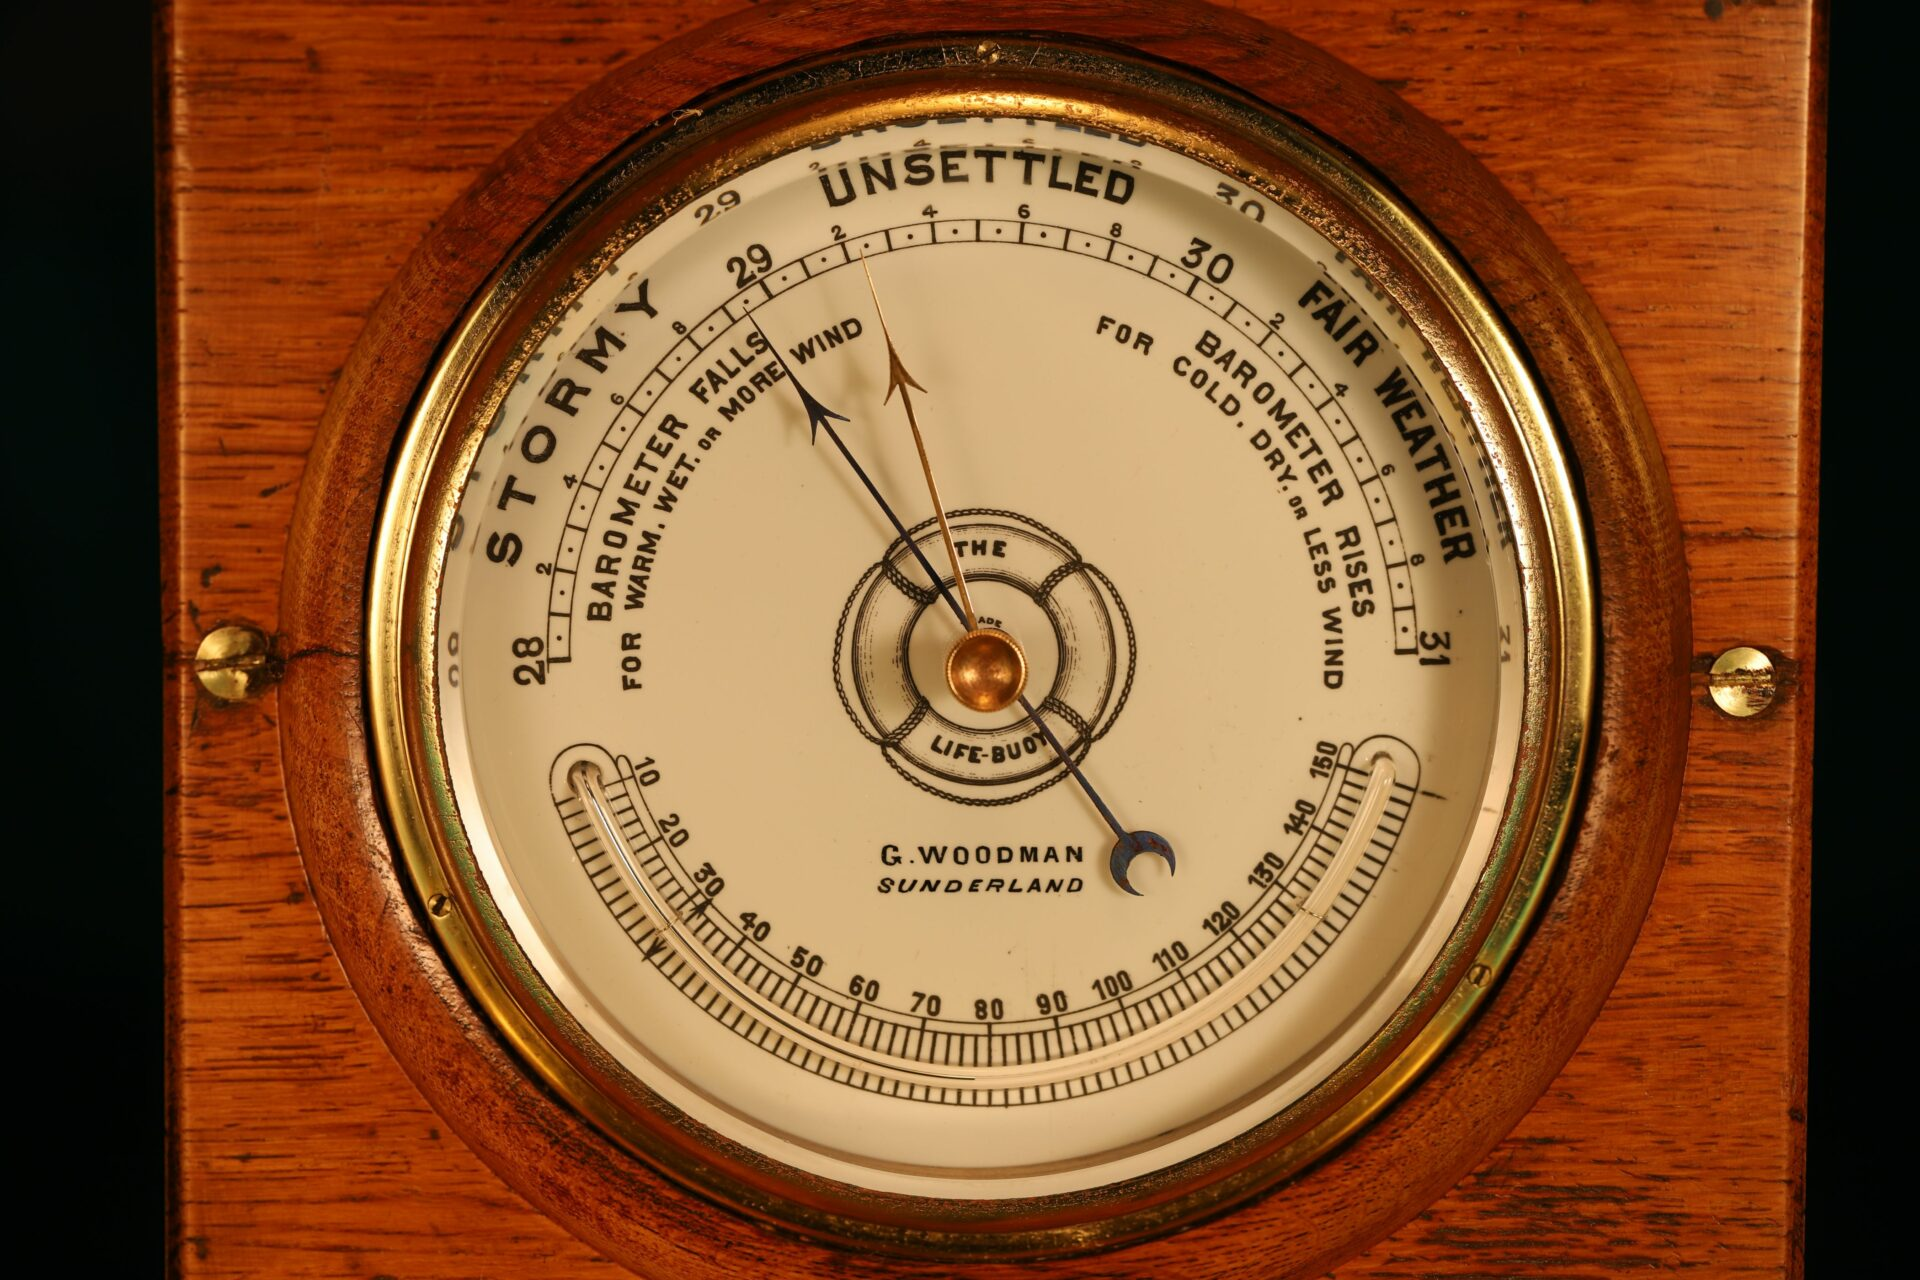 Image of The Life-Buoy Barometer by Dollond c1885 taken from front